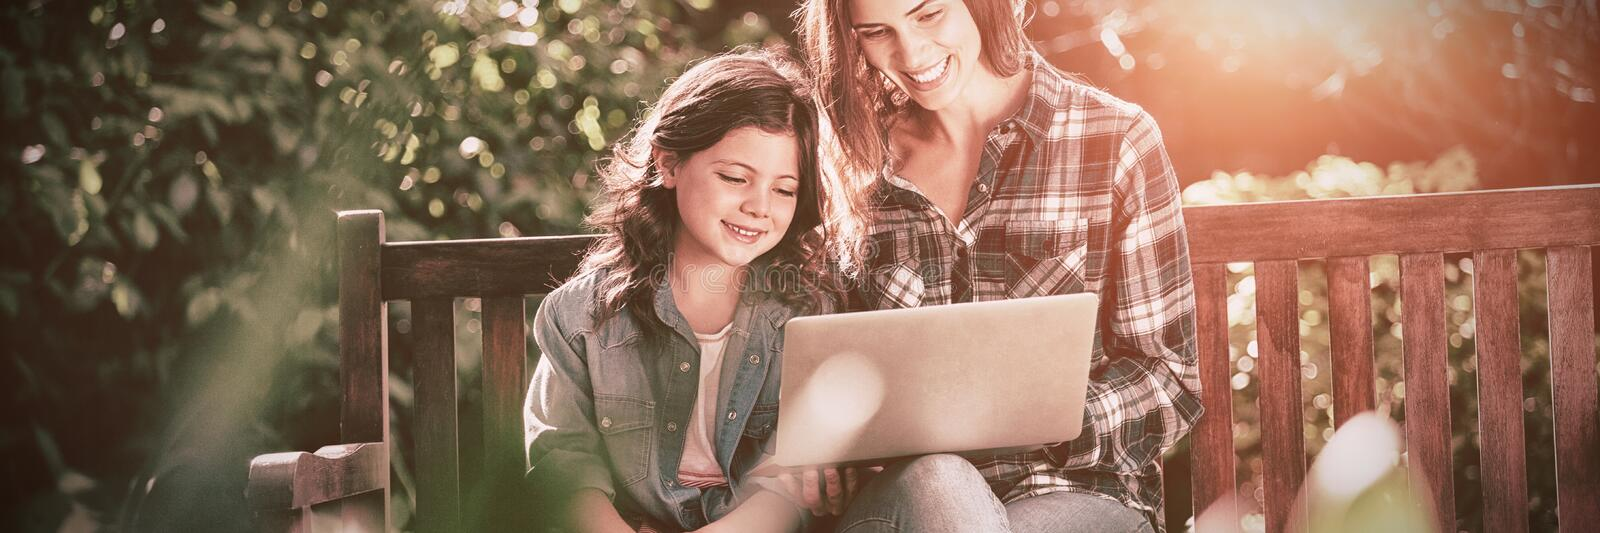 Smiling mother and daughter using laptop while sitting on wooden bench royalty free stock photos